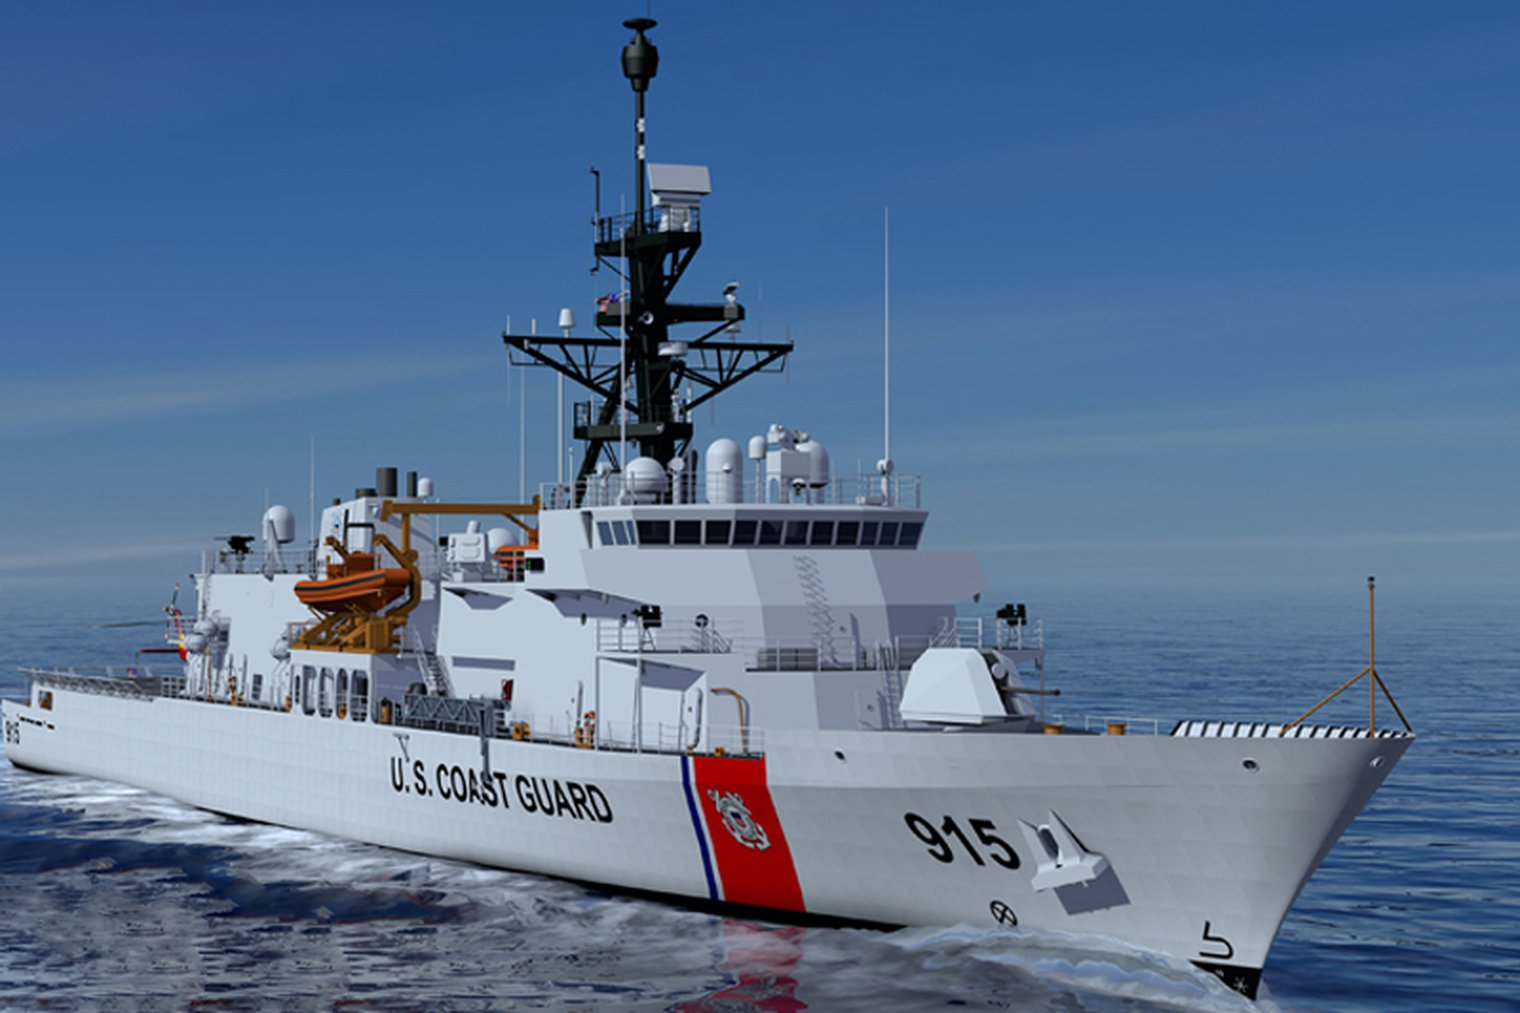 ESG completes FCDR of Offshore Patrol Cutter - NWI - Naval ...